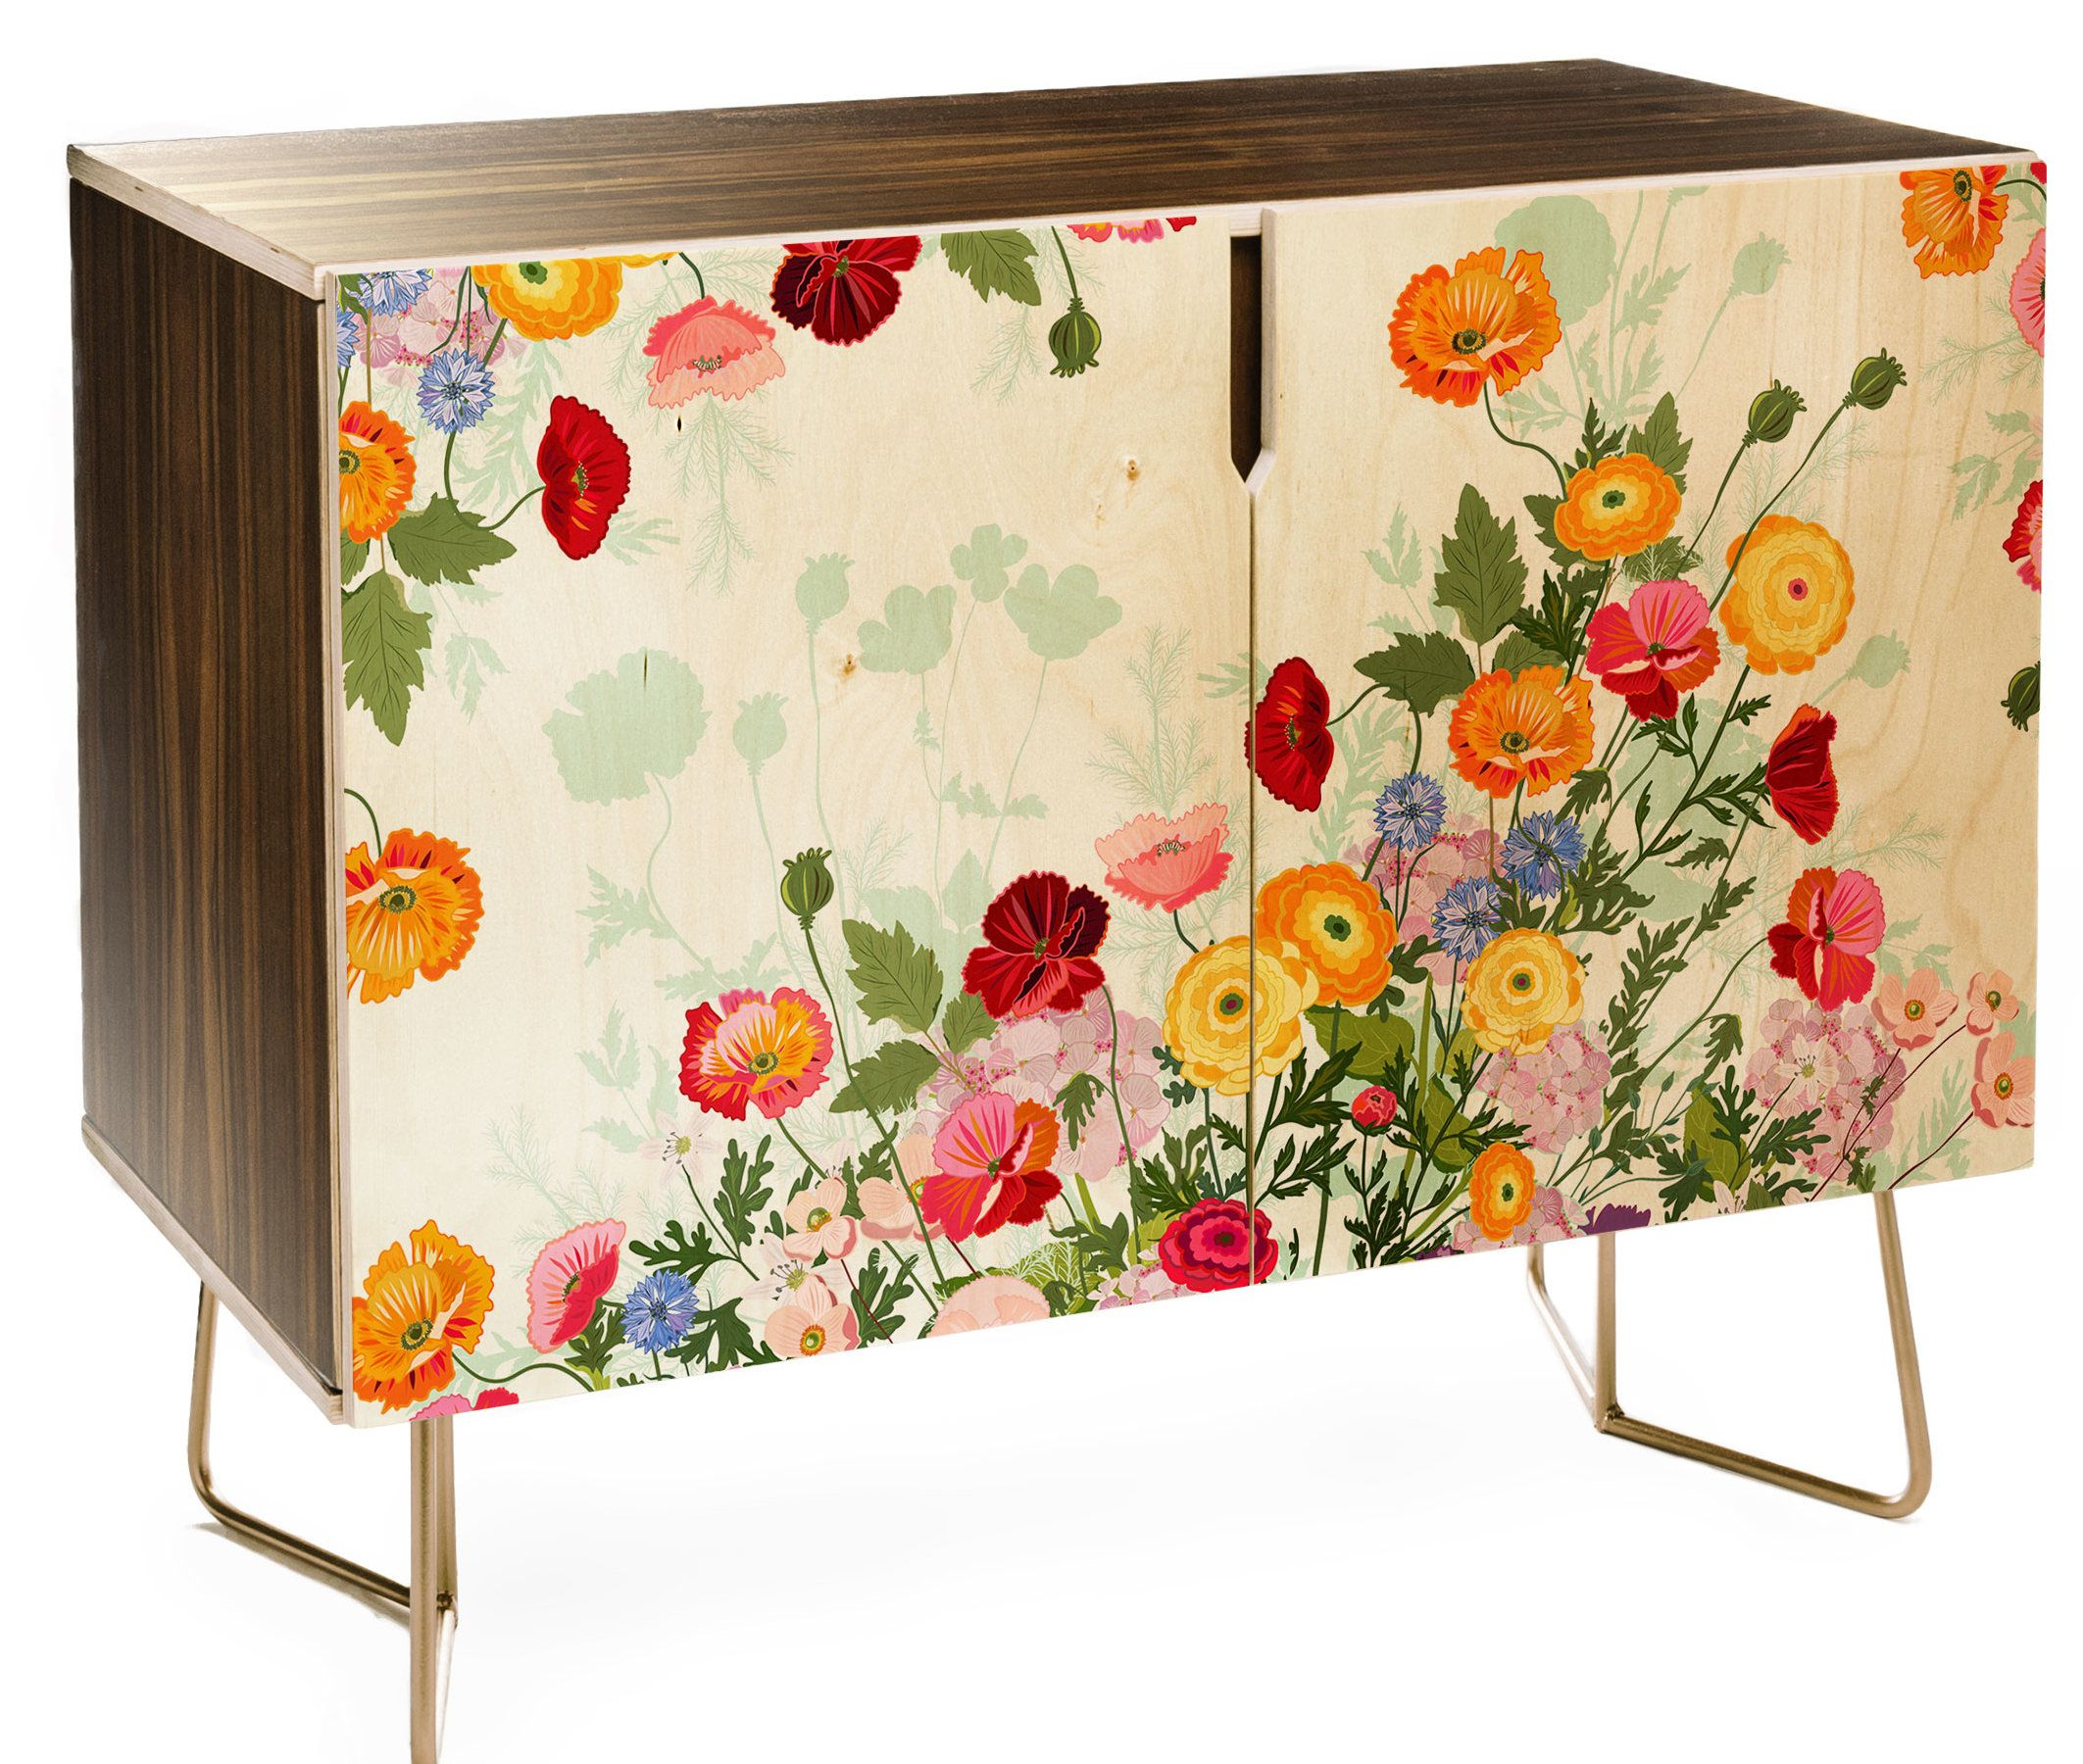 East Urban Home Iveta Abolina Emmaline Credenza In 2019 Intended For Most Popular Emmaline Sideboards (#4 of 20)